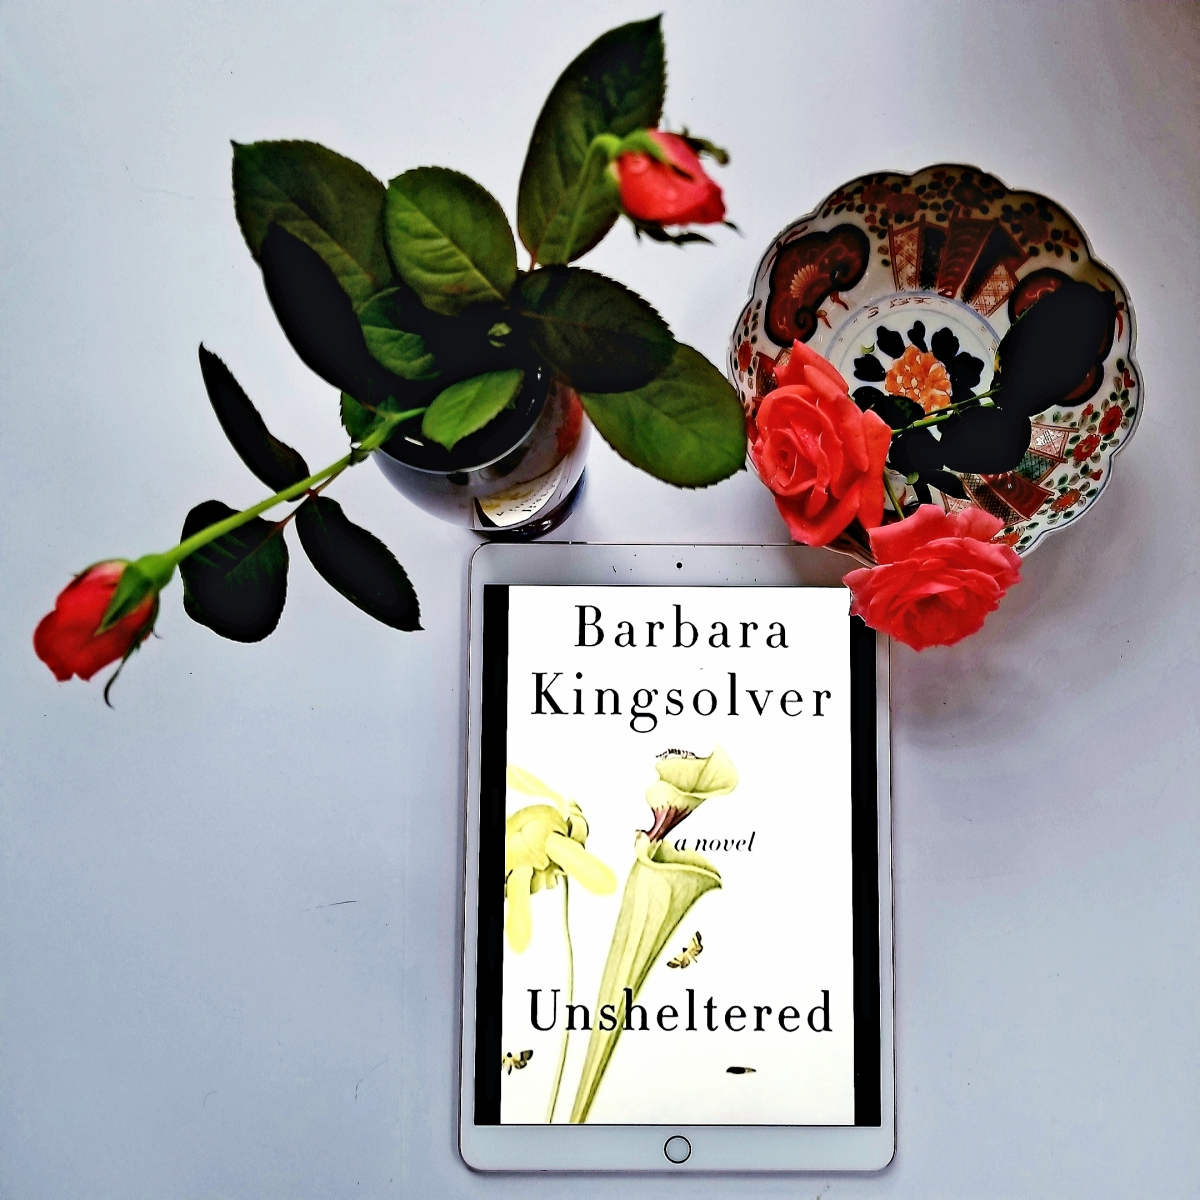 Unsheltered by Barbara Kingsolver #bookreview #tarheelreader #thrunsheltered @b_kingsolver @harperbooks #unsheltered